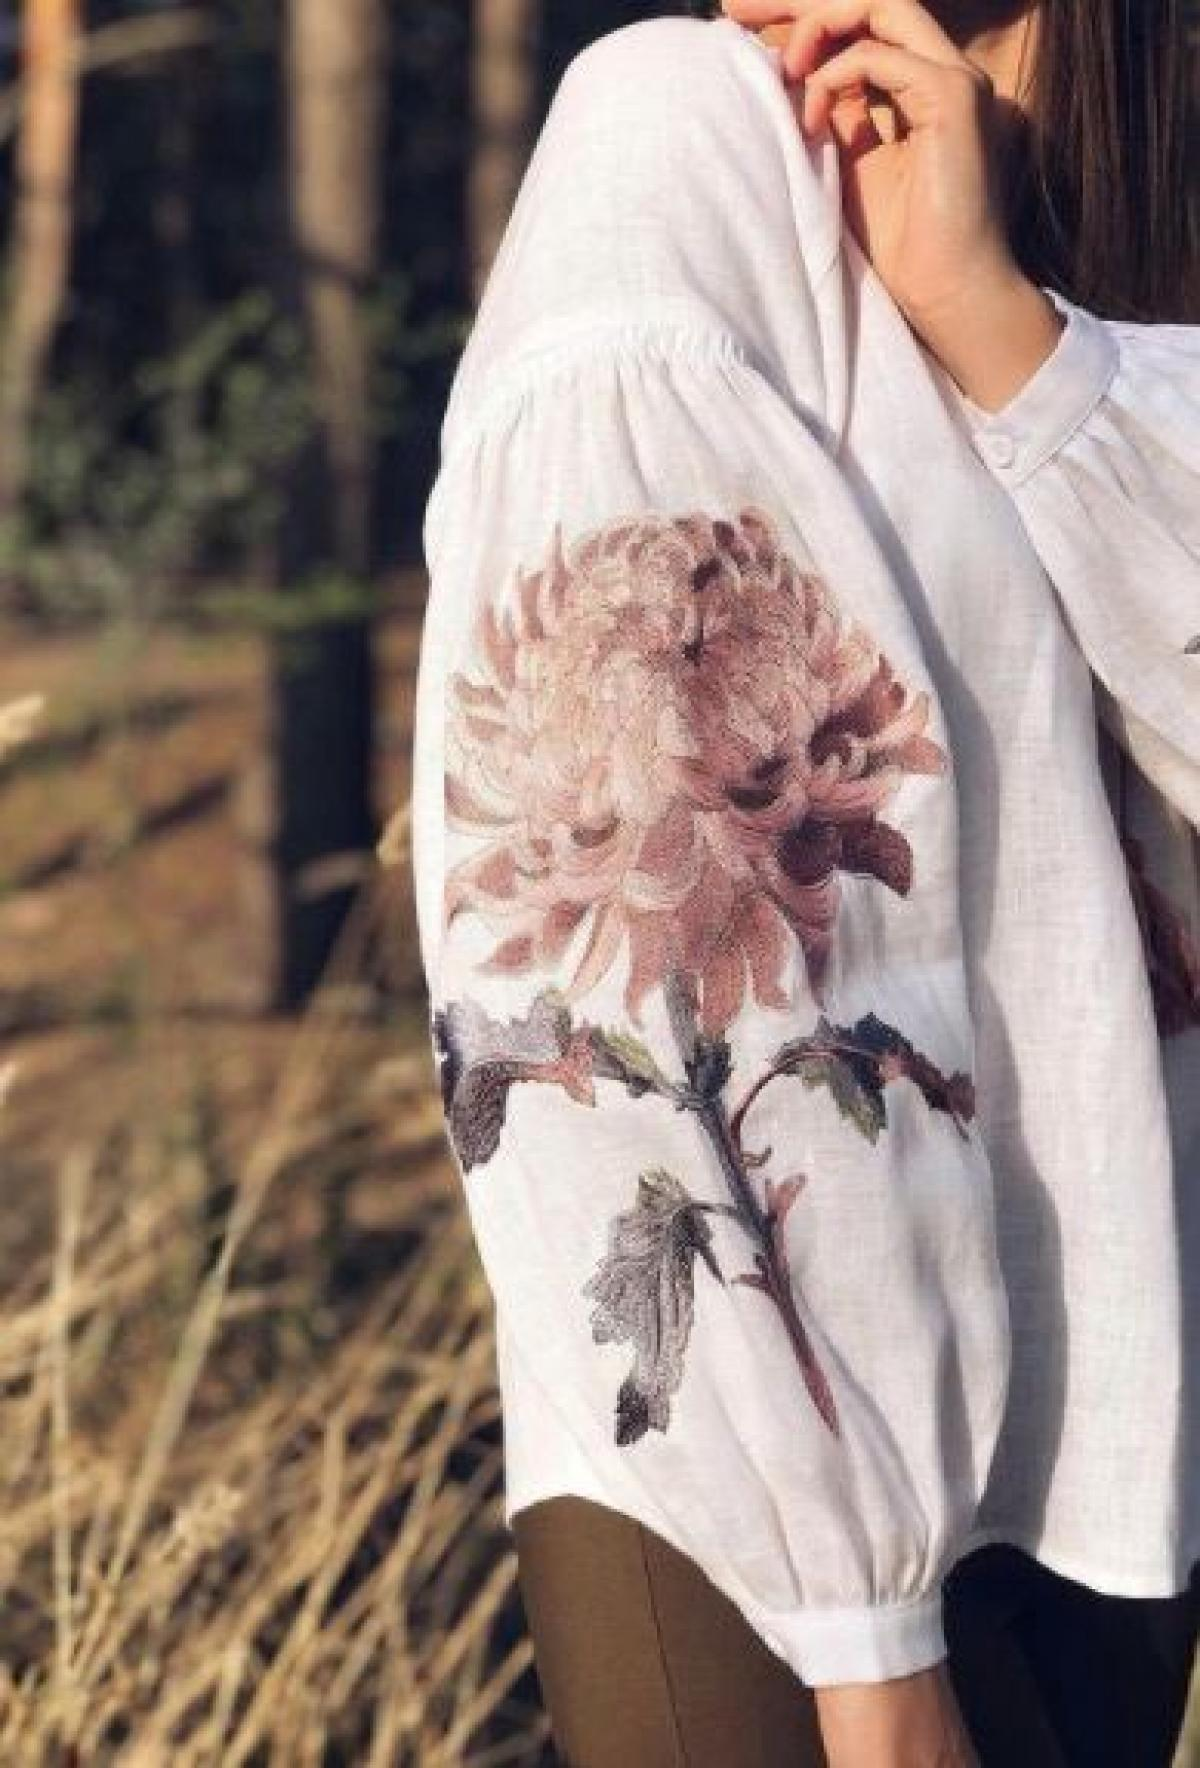 Women's white linen embroidered shirt with embroidery chrysanthemum